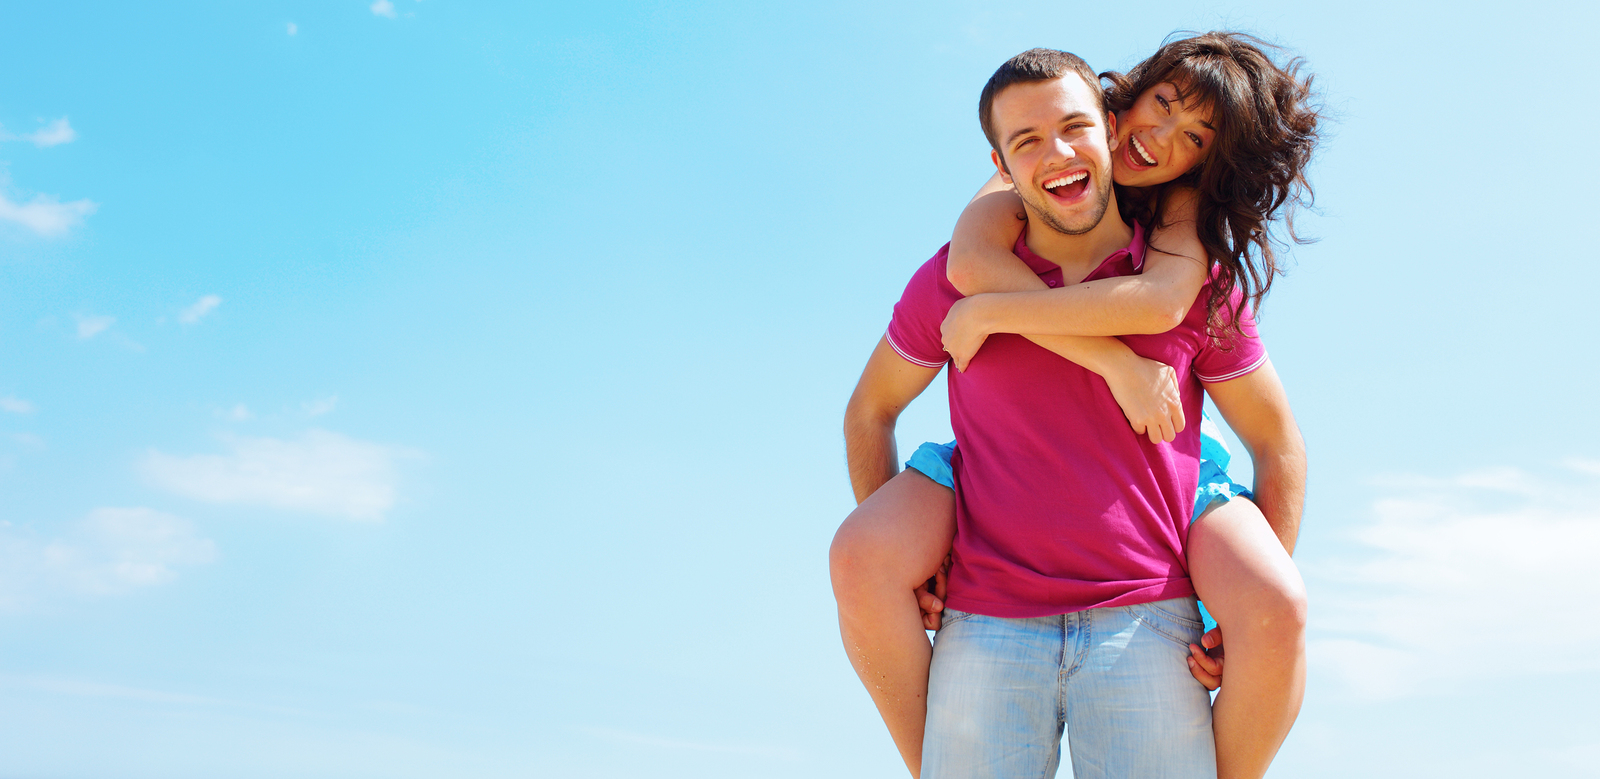 bigstock-happy-young-couple-in-casual-c-26892059